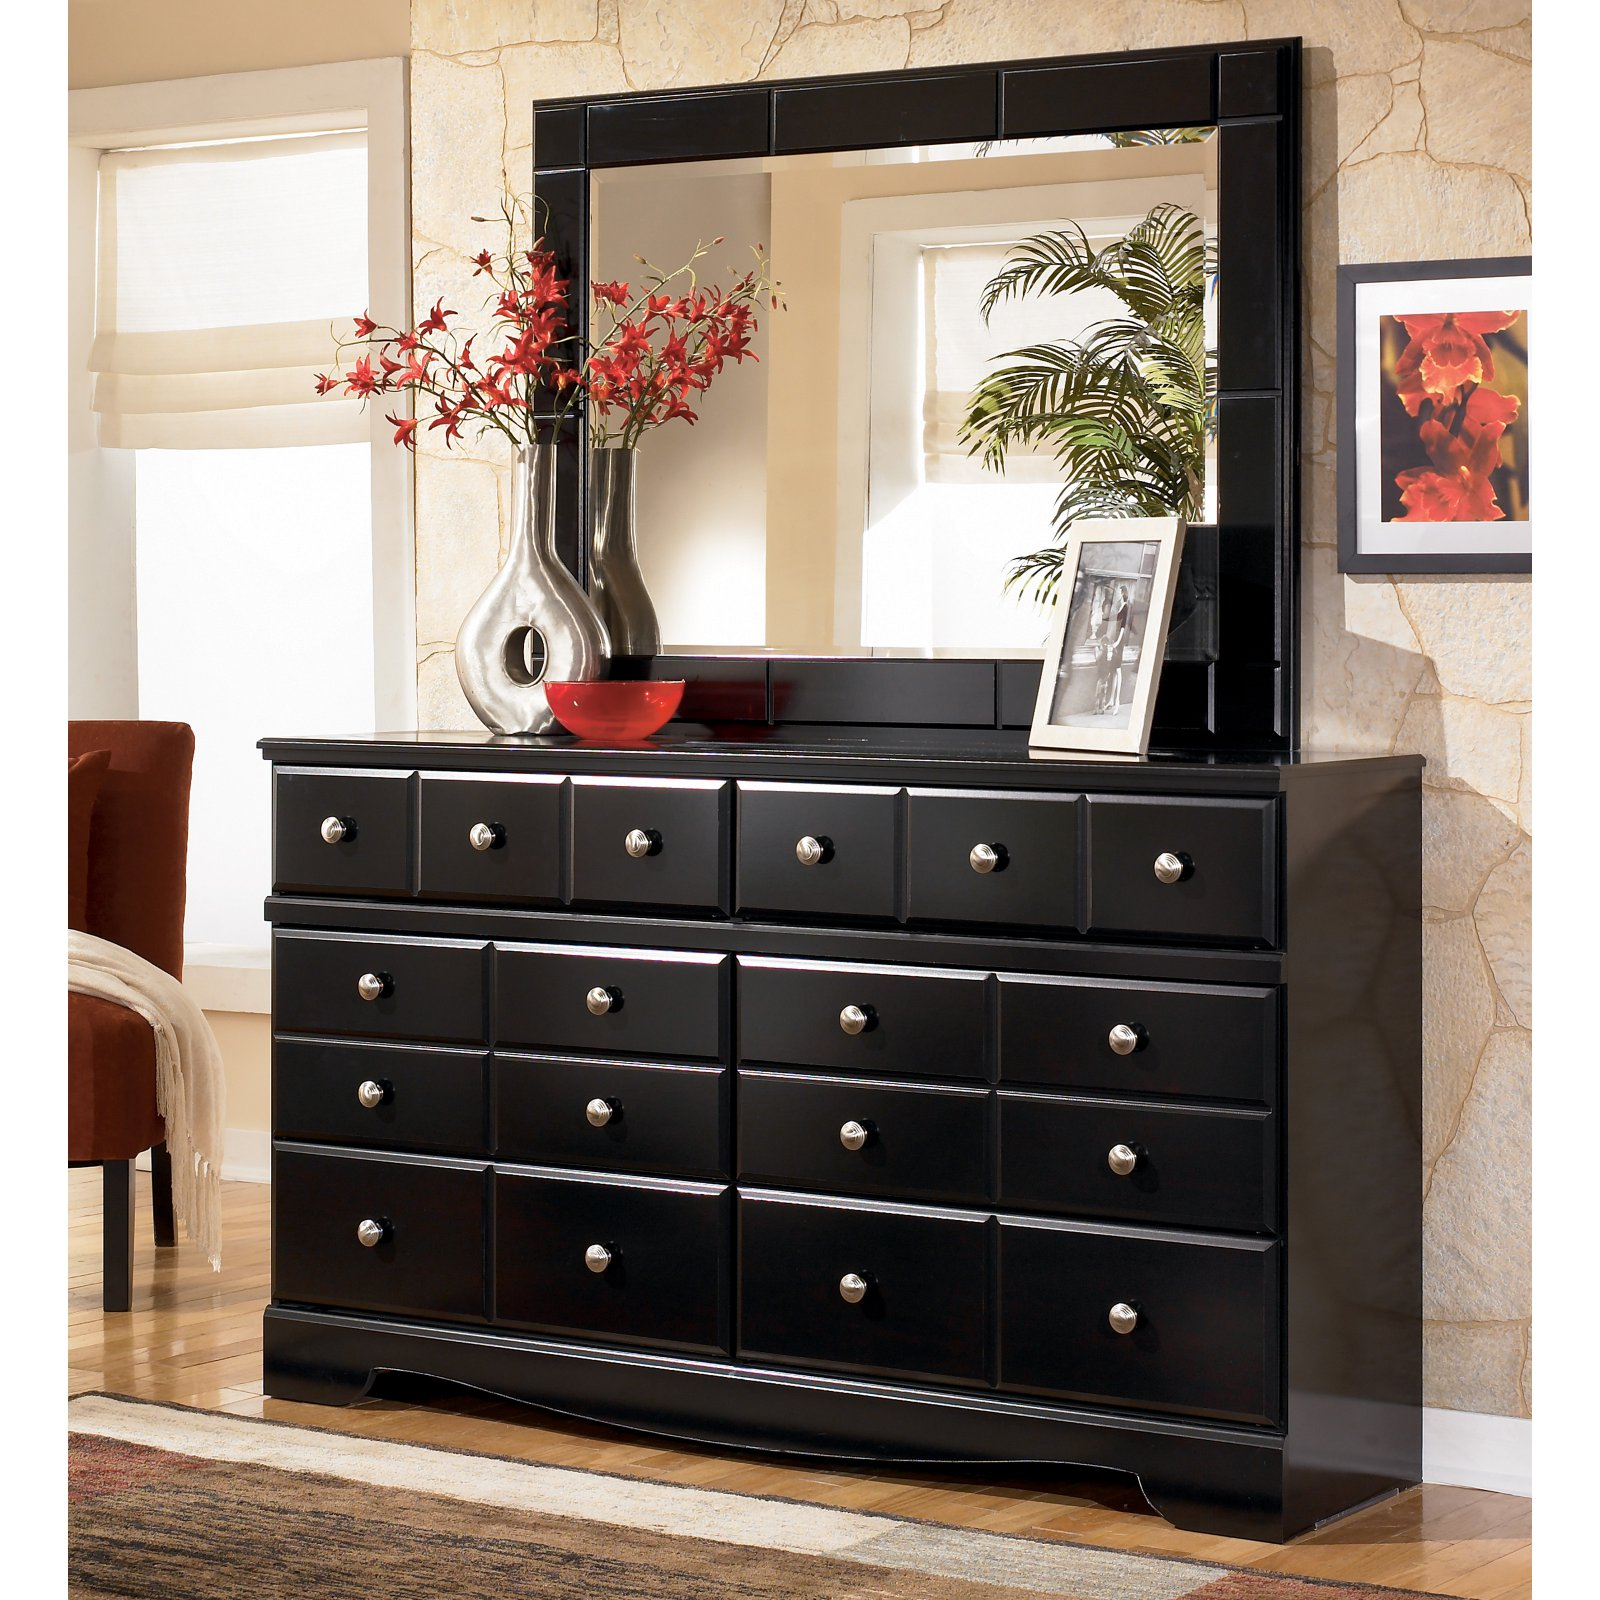 Signature Design by Ashley Shay 6 Drawer Dresser with Optional Mirror